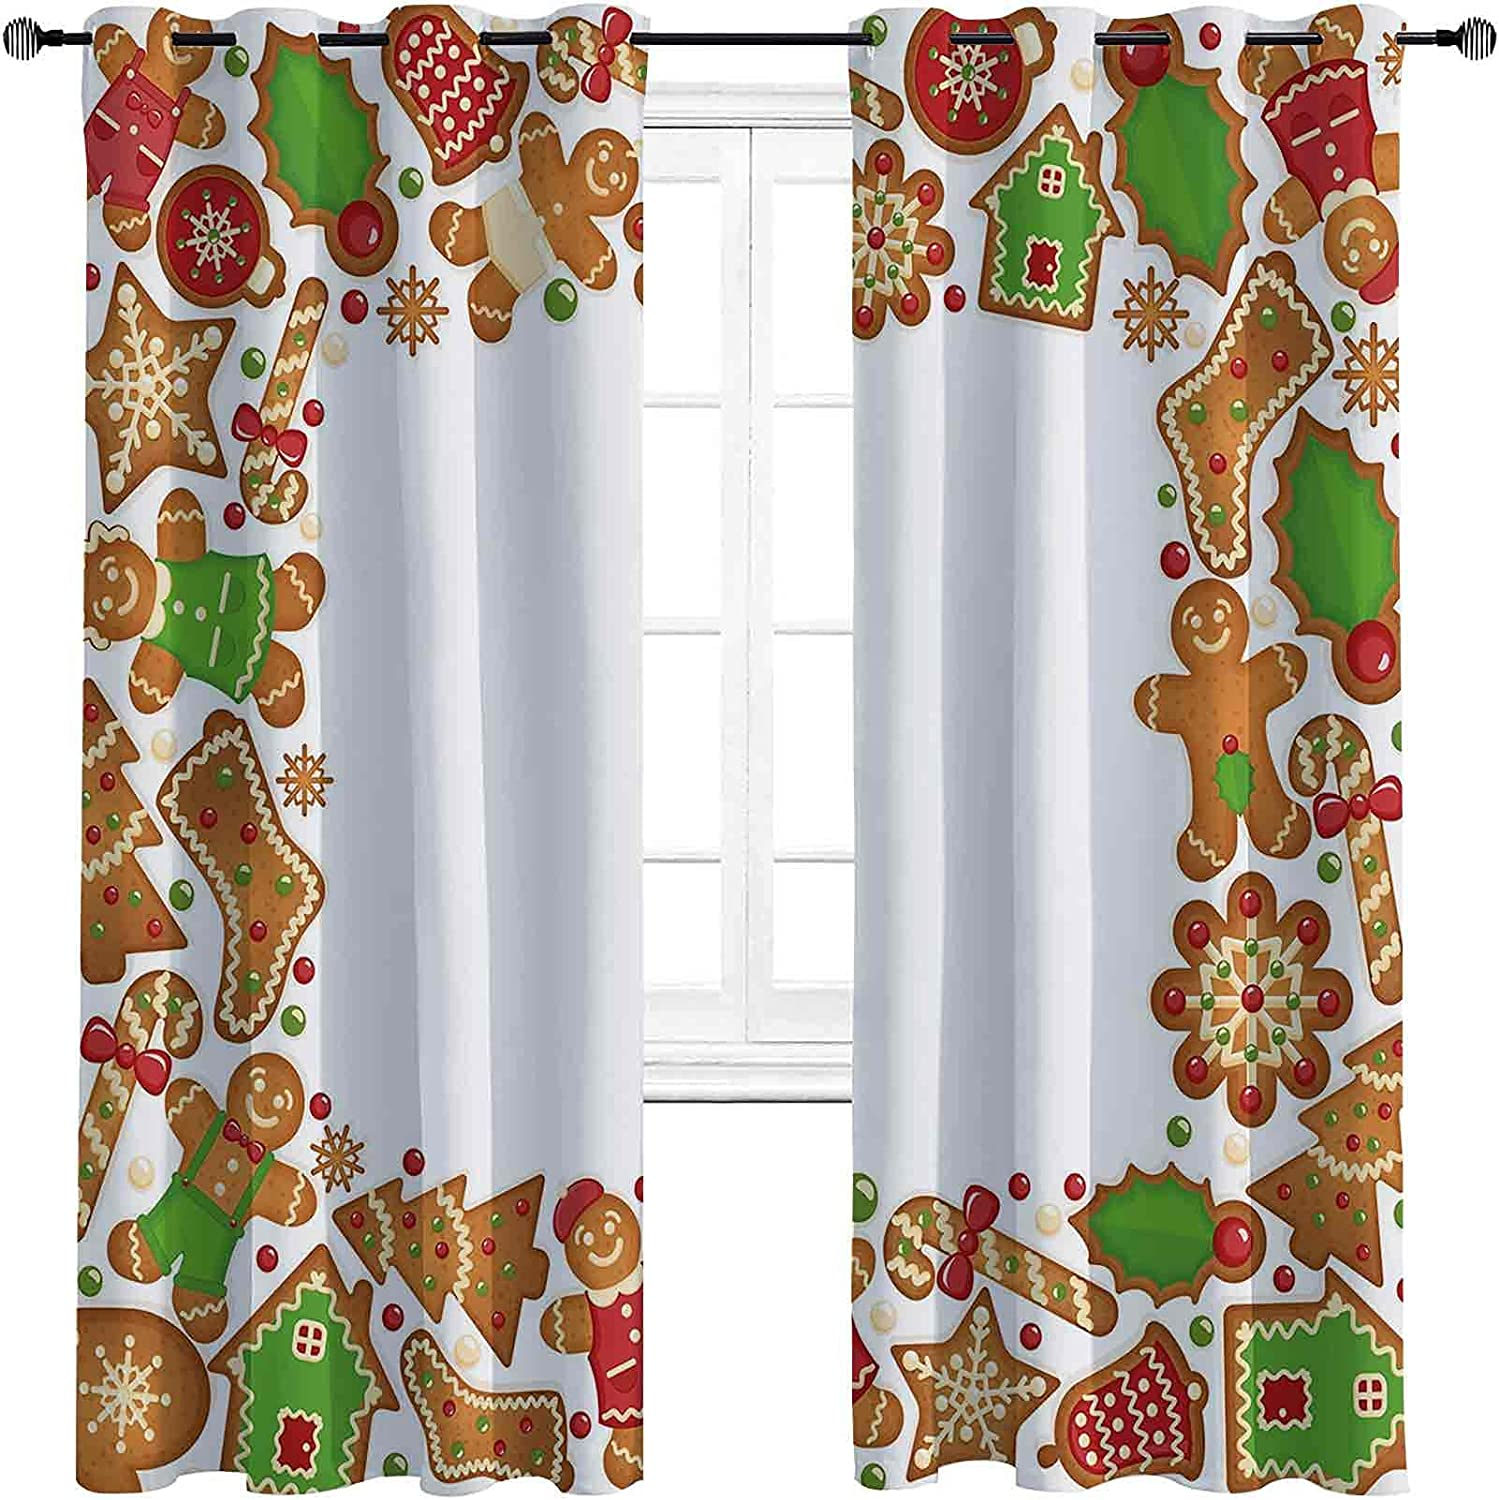 Kids Max 84% OFF Christmas Bedroom Blackout Curtains Sweet Xmas Taste 2021new shipping free Se of